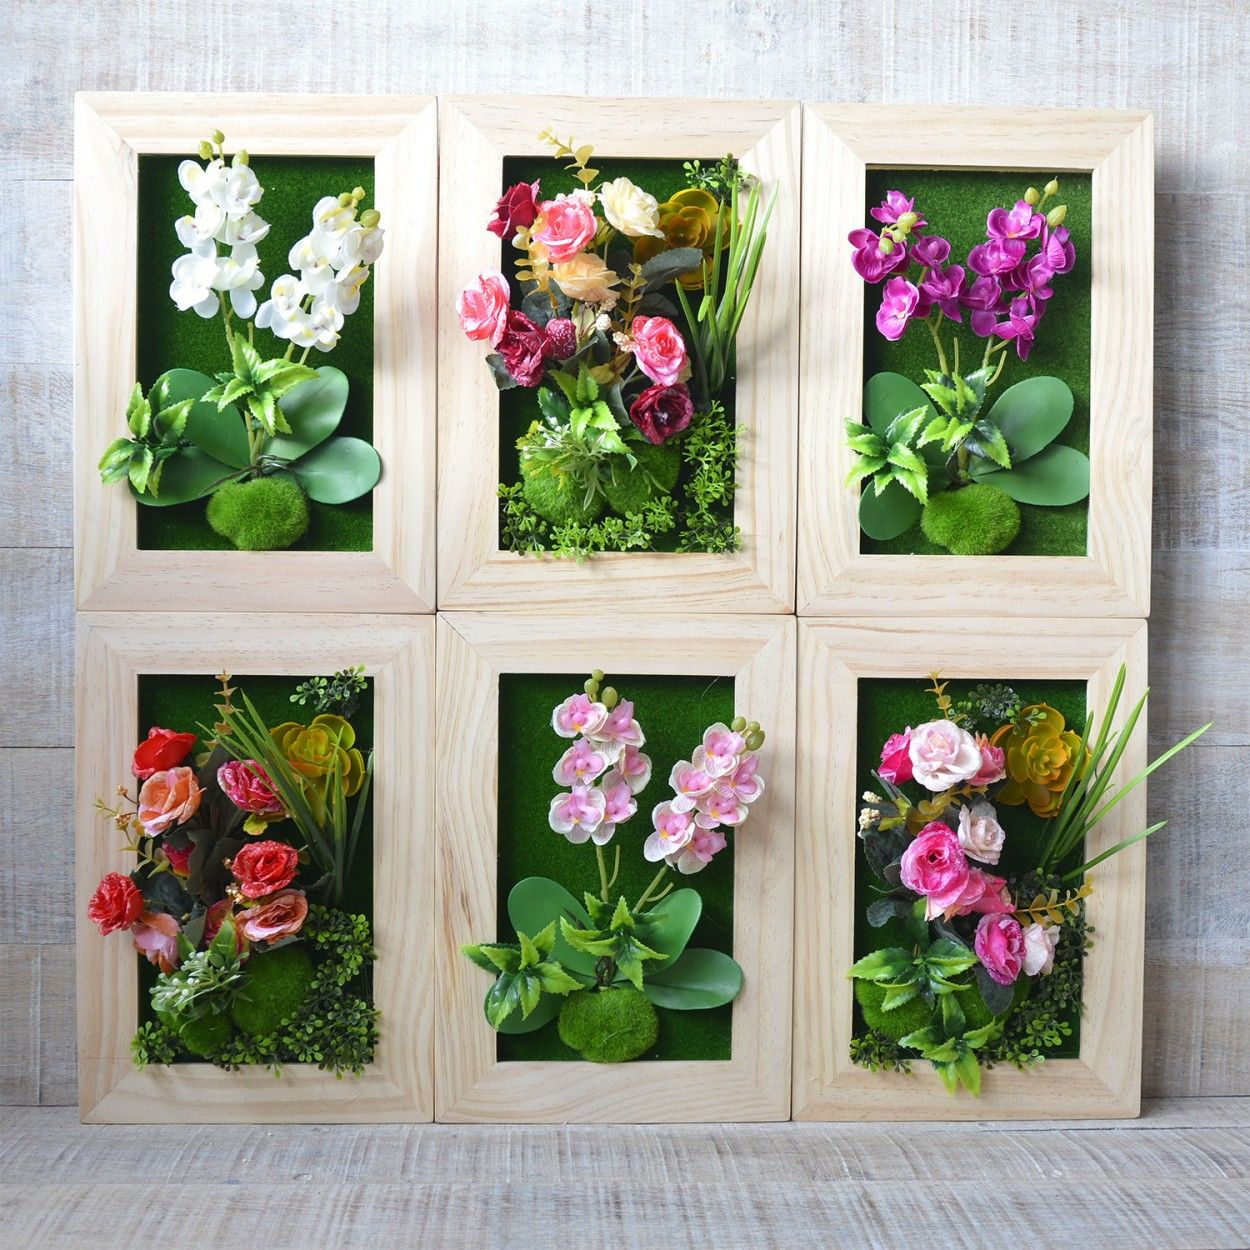 Jard n vertical pared plantas artificiales hogar y m s for Plantas artificiales jardin vertical